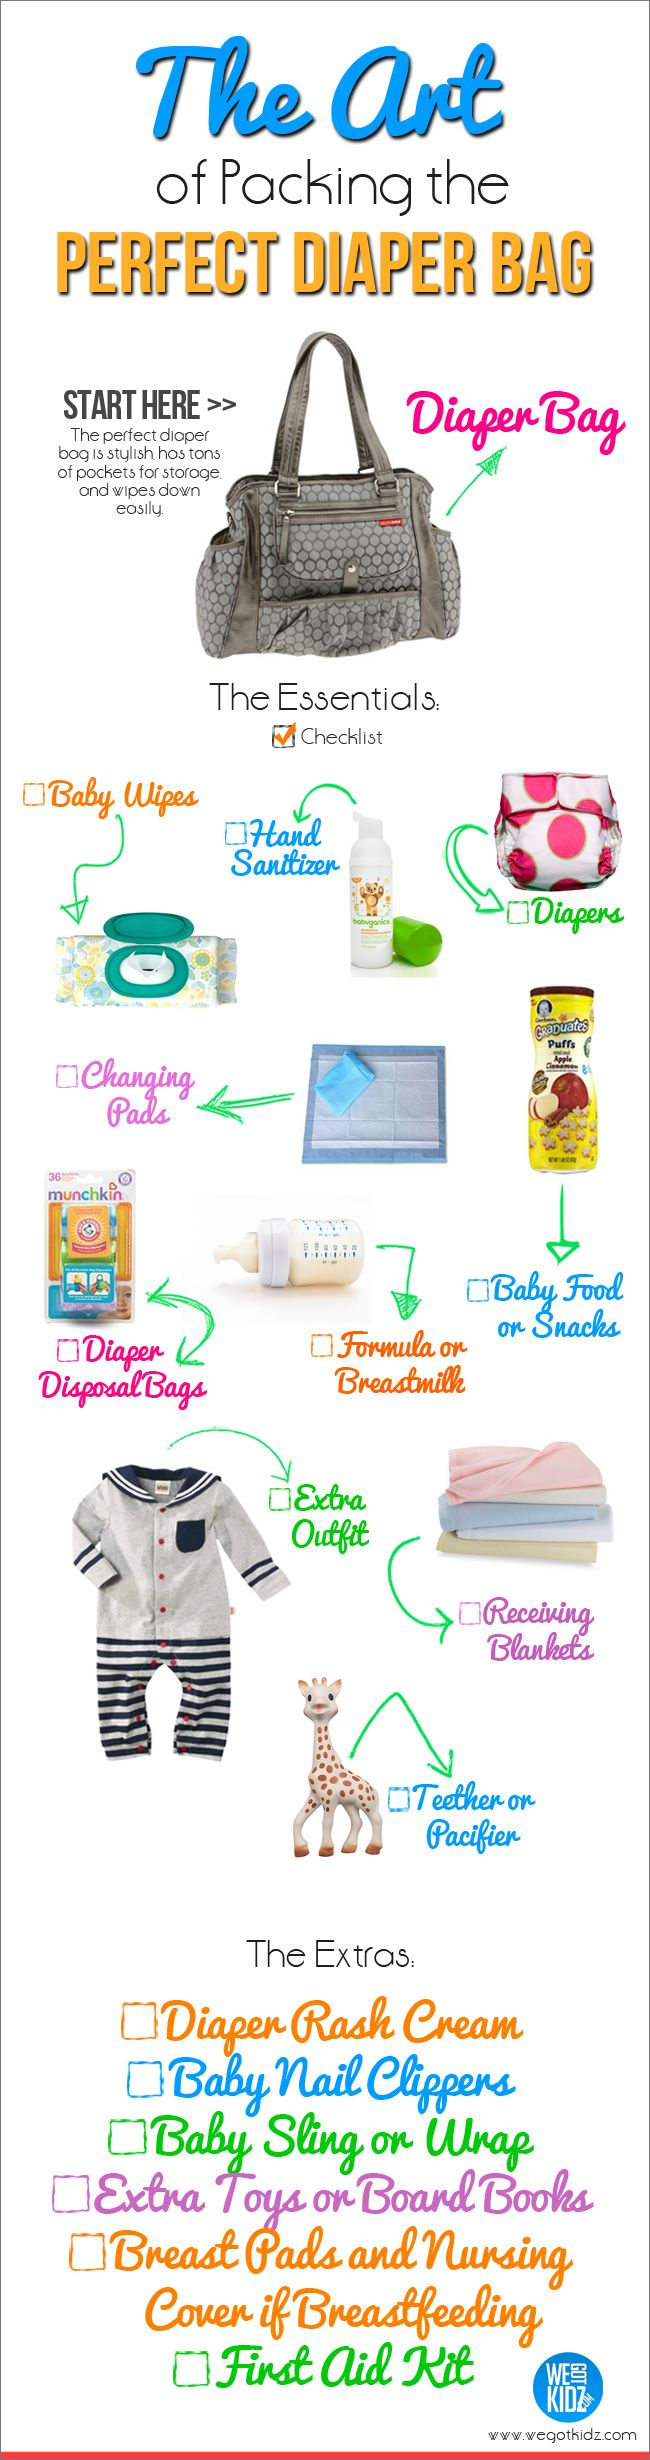 The Art of Packing the Perfect Diaper Bag #newborns #newparent #babies